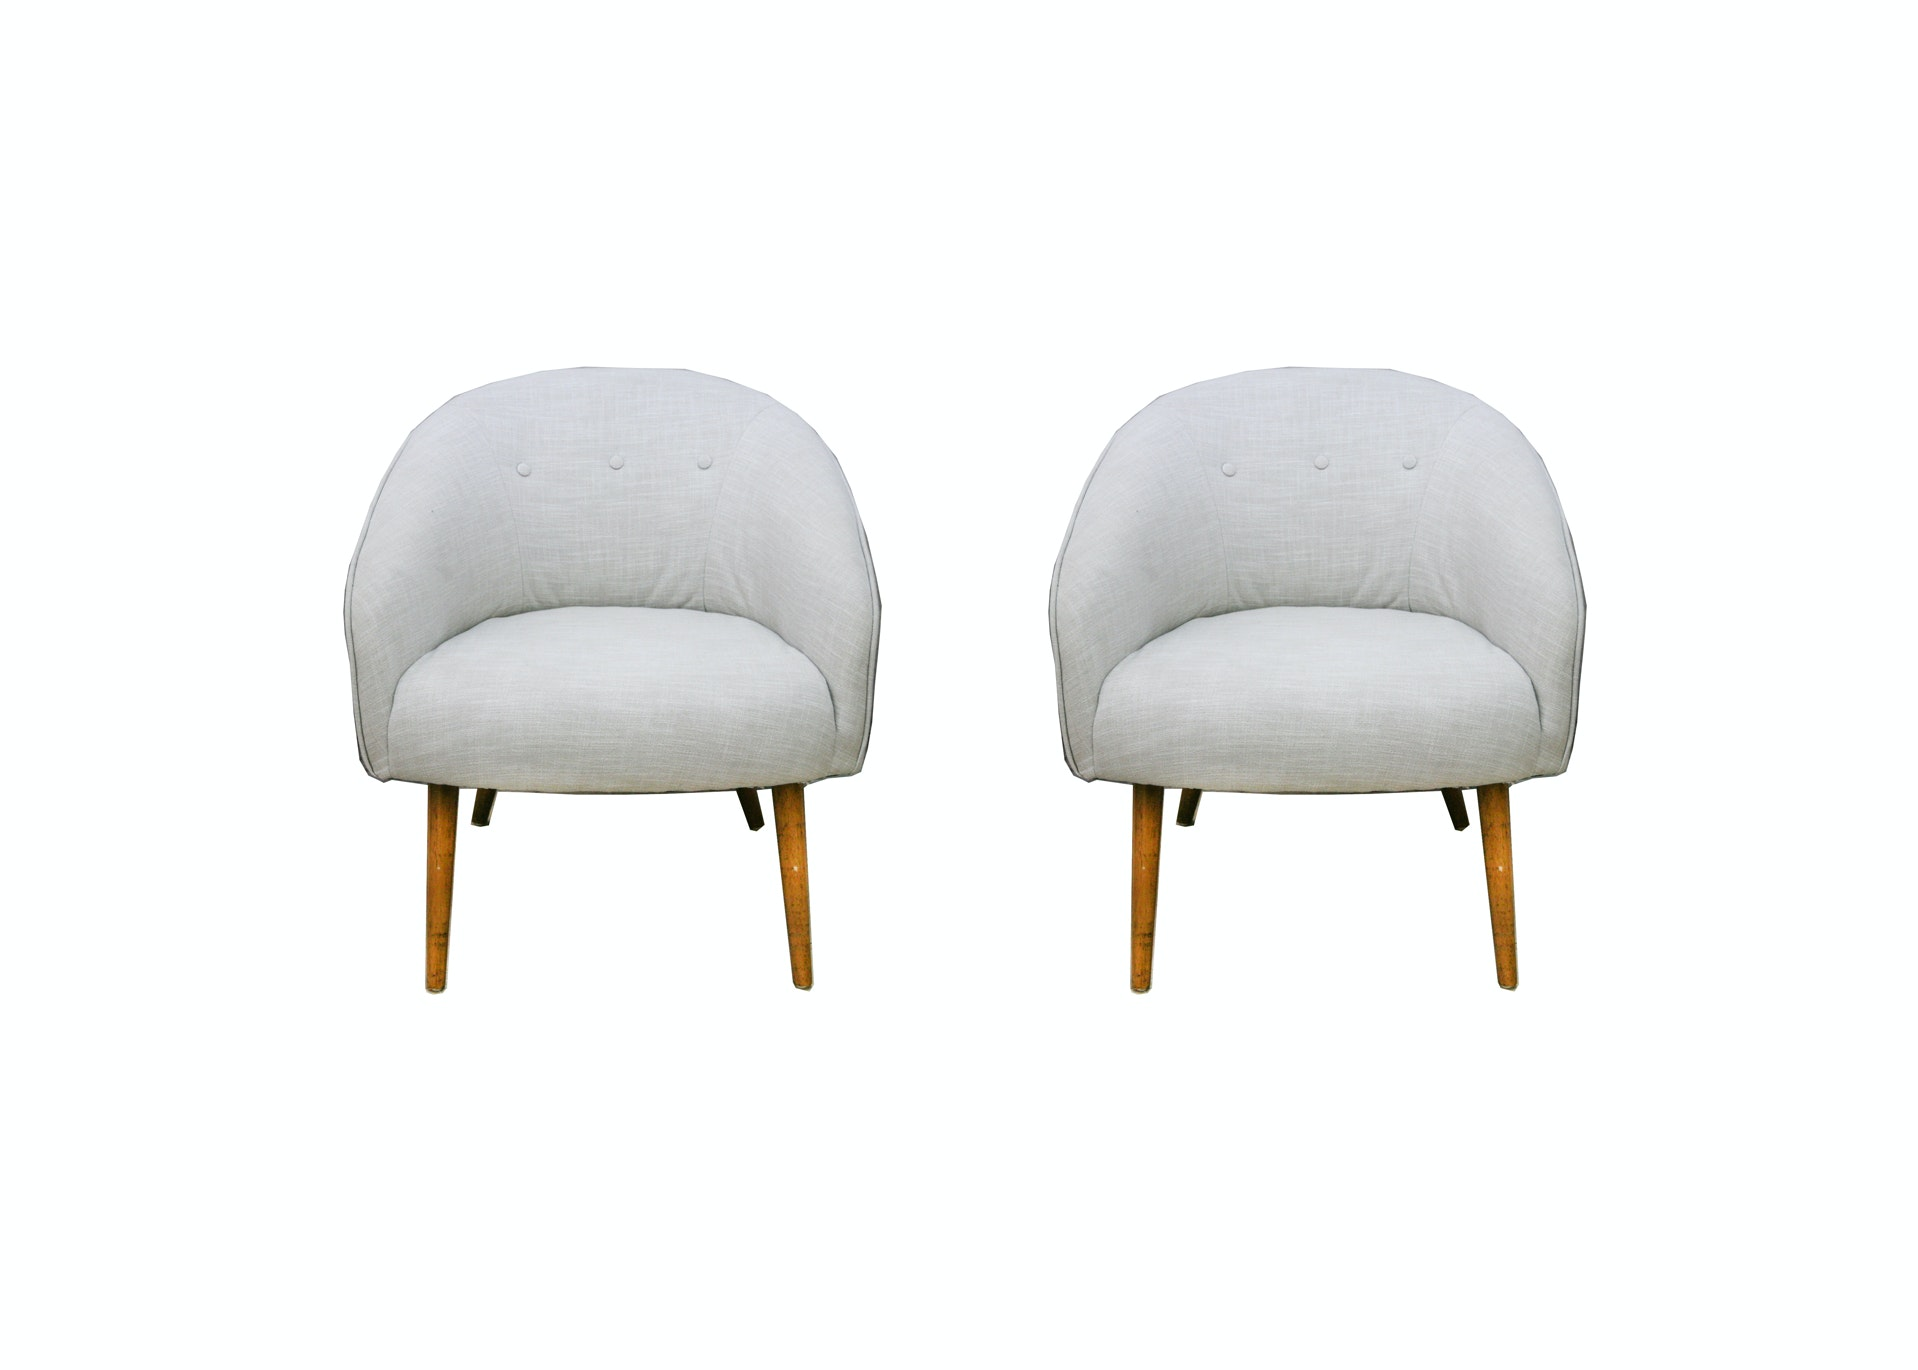 West elm style furniture Sofa Sofa Loophealthco Mid Century Modern Style Chairs By West Elm Ebth